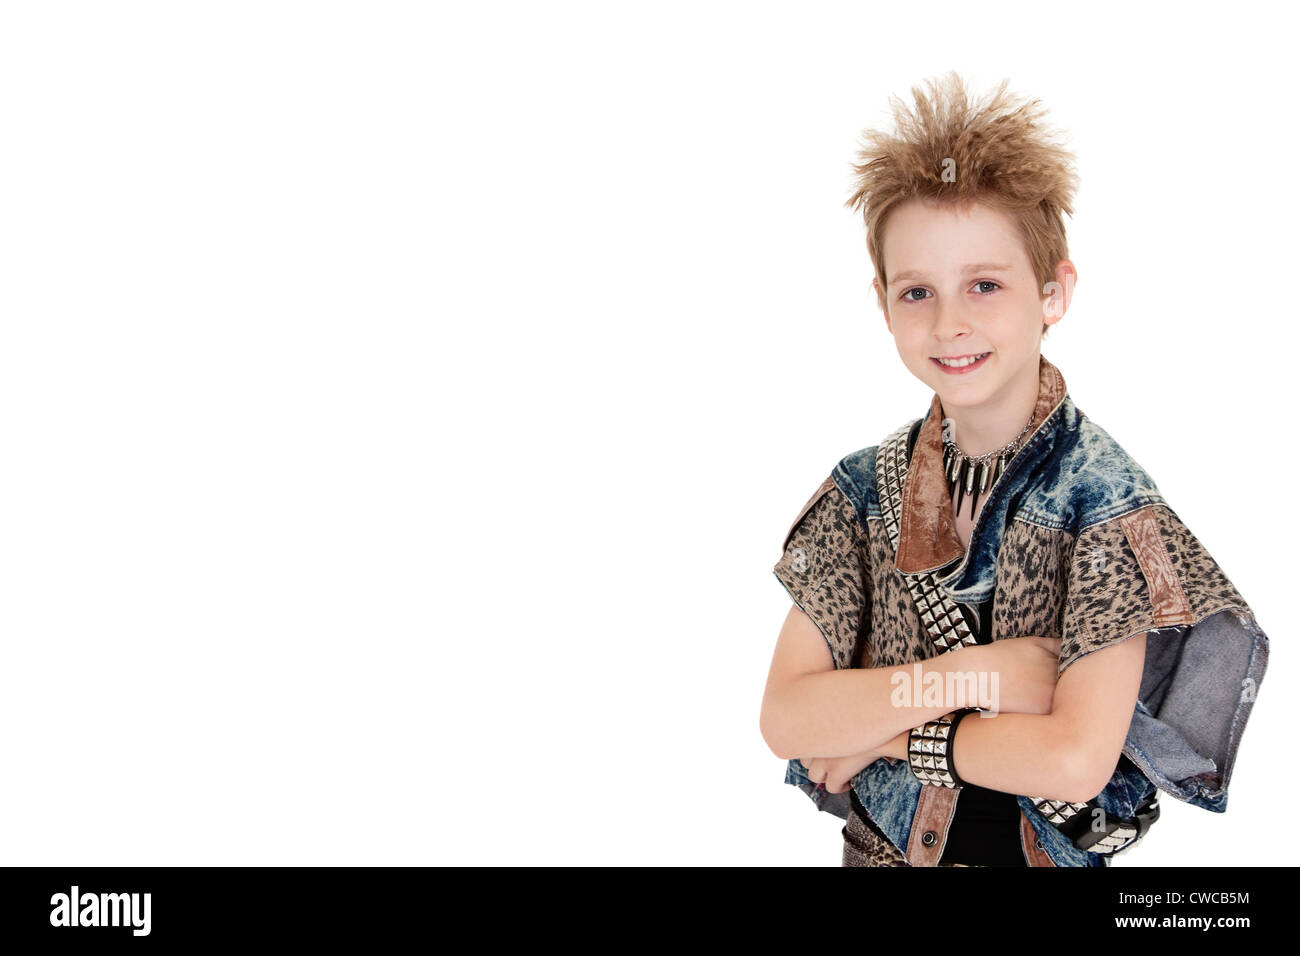 Portrait of pre-teen boy standing with arms crossed over white background - Stock Image